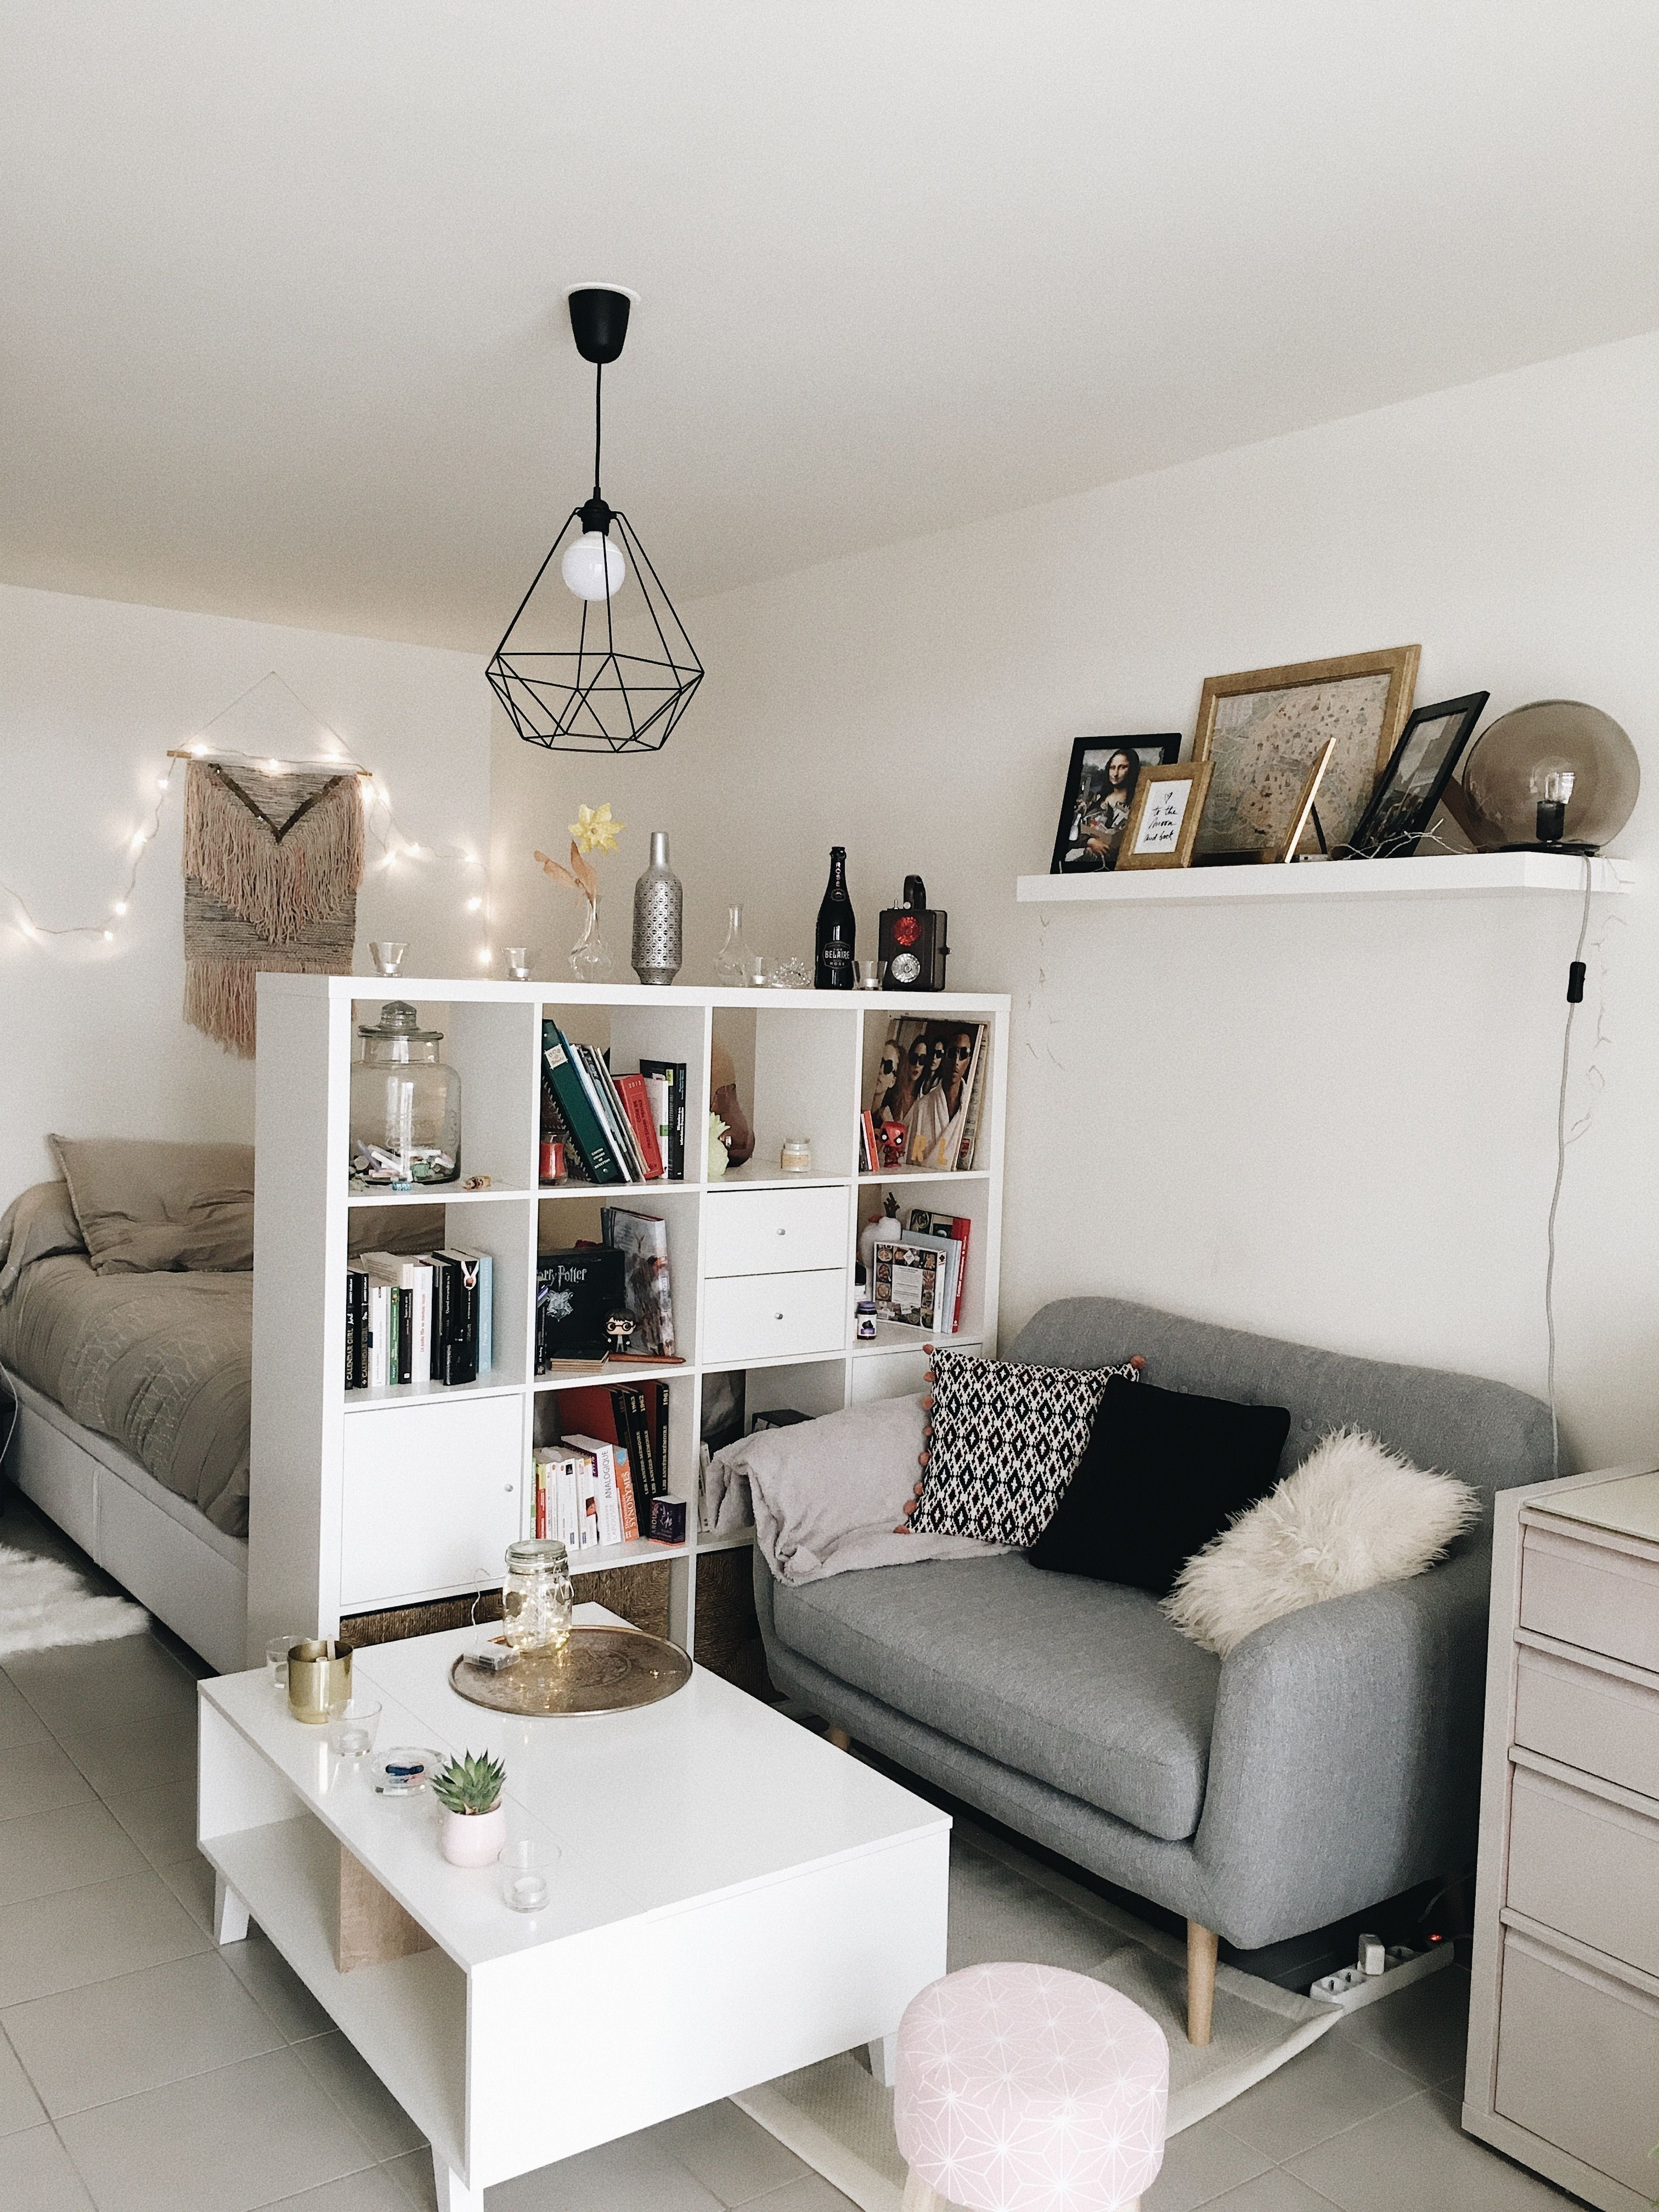 42 Minimalist Apartment Studio Decorating Ideas Studio Apartments Are Becoming An Incre In 2020 Apartment Room Small Apartment Decorating Studio Apartment Decorating